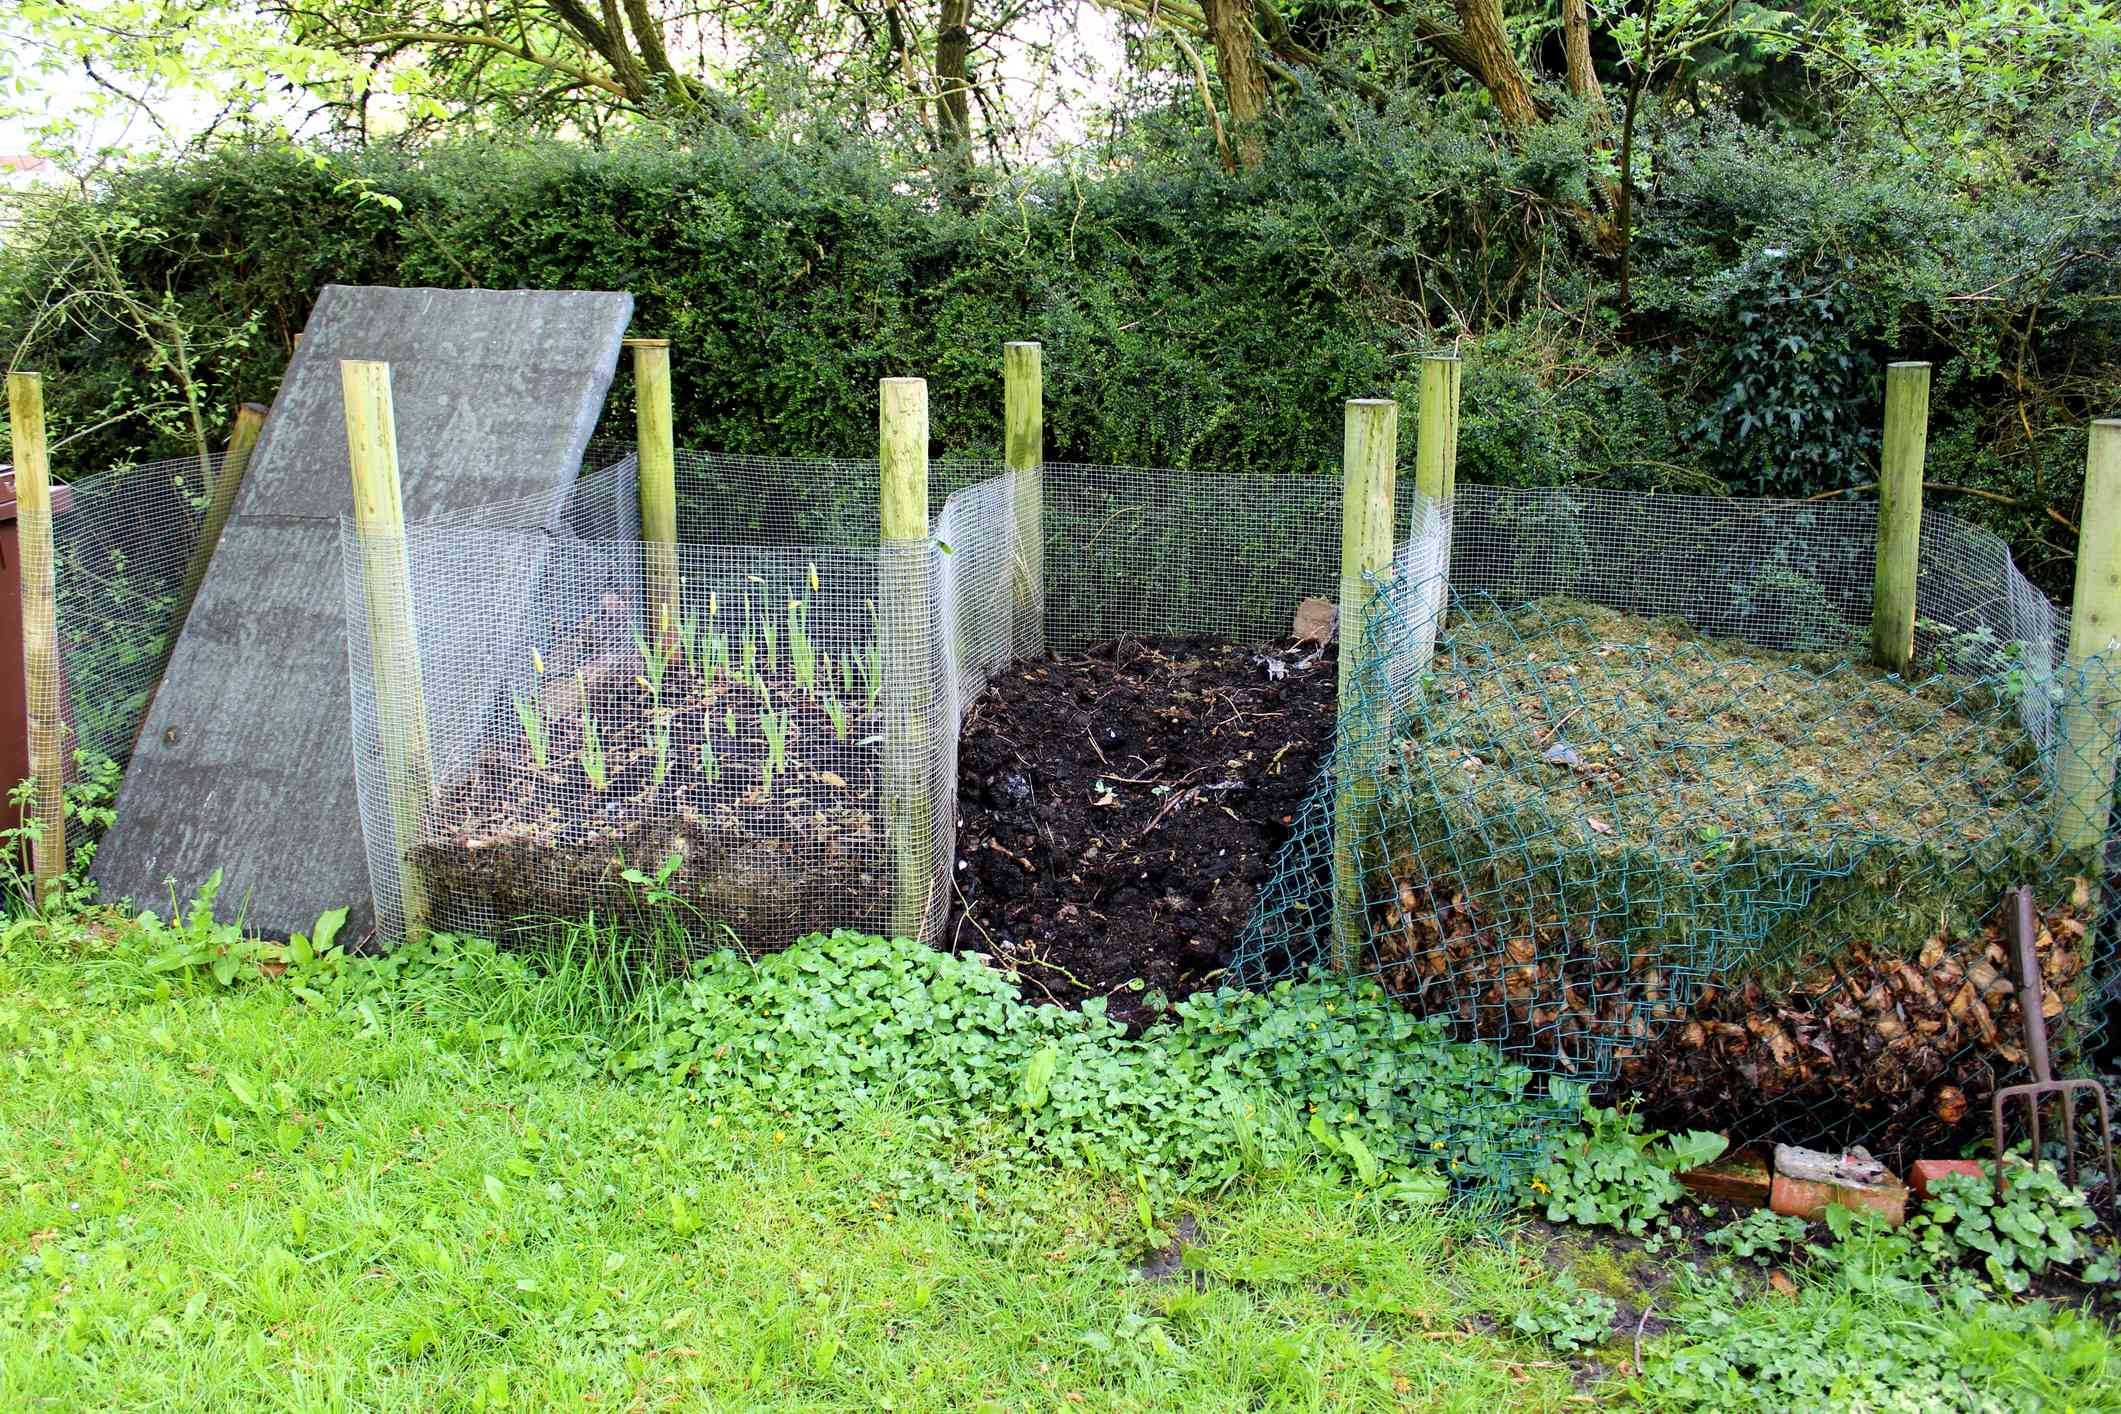 Compost bins built with wire